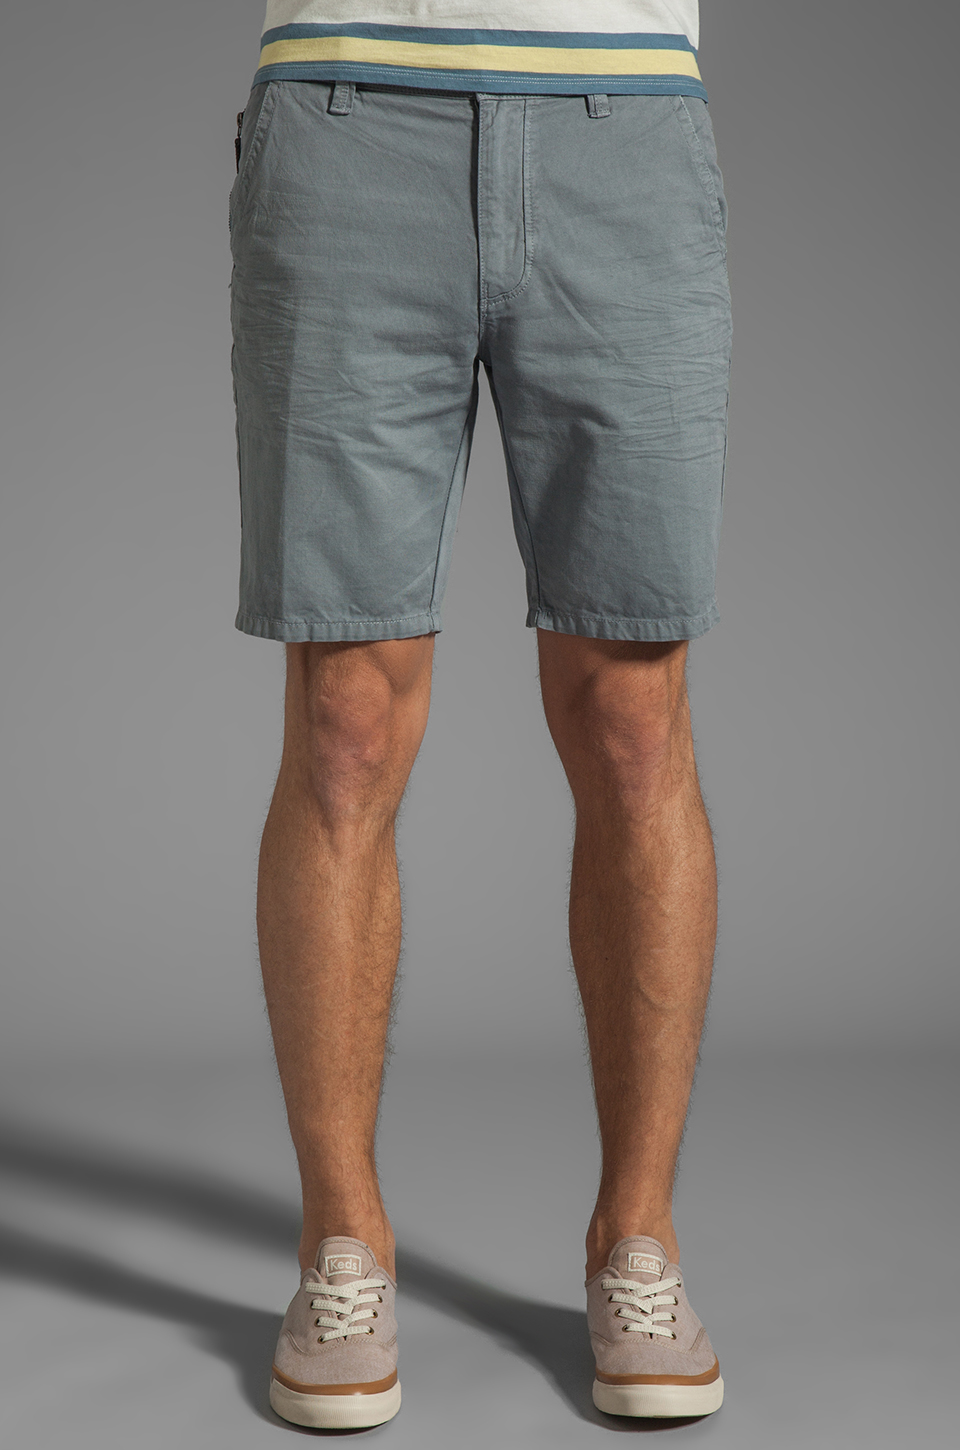 Howe Eye Know Shorts in Grey Skies